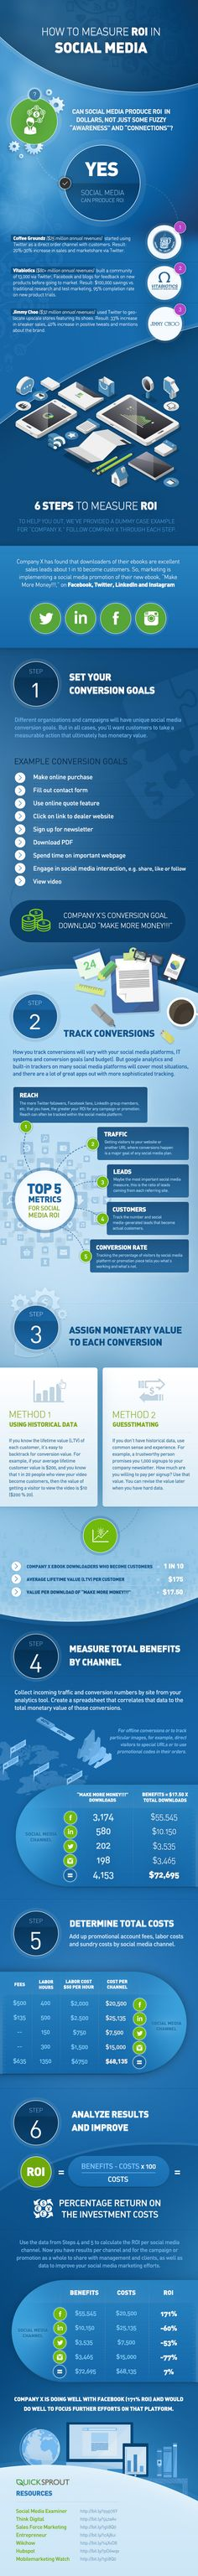 6 Steps to Measuring Social Media ROI #Infographic